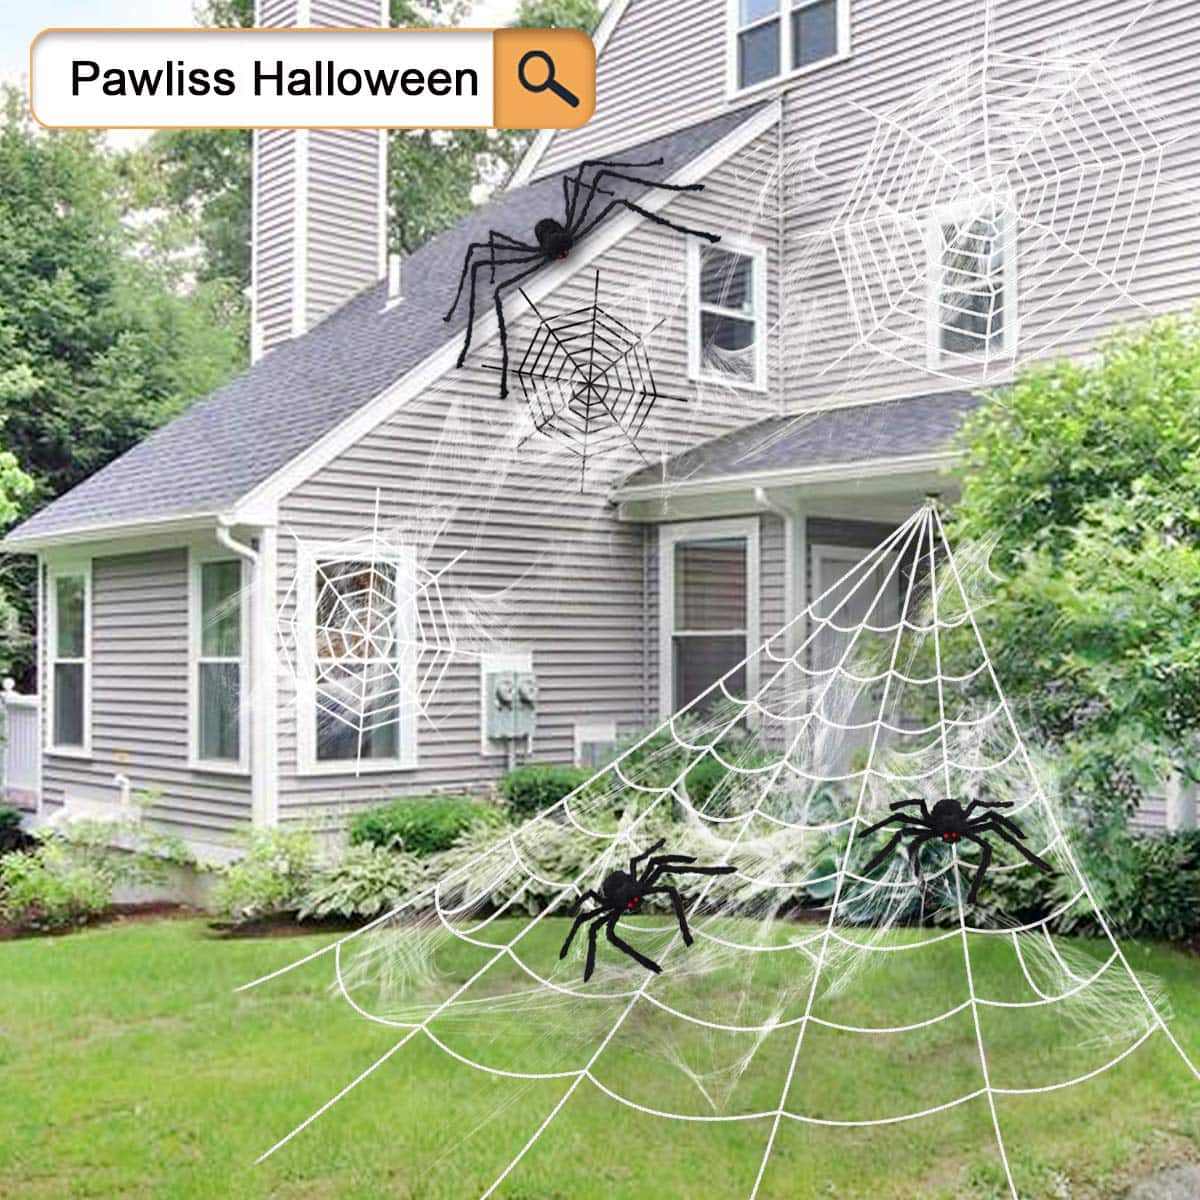 Amazon warehouse - Pawliss Halloween Decorations Outdoor, Giant Dense Spider Web with Super Stretch Cobweb Set Yard Decor, White, 16 feet - used very good $1.71